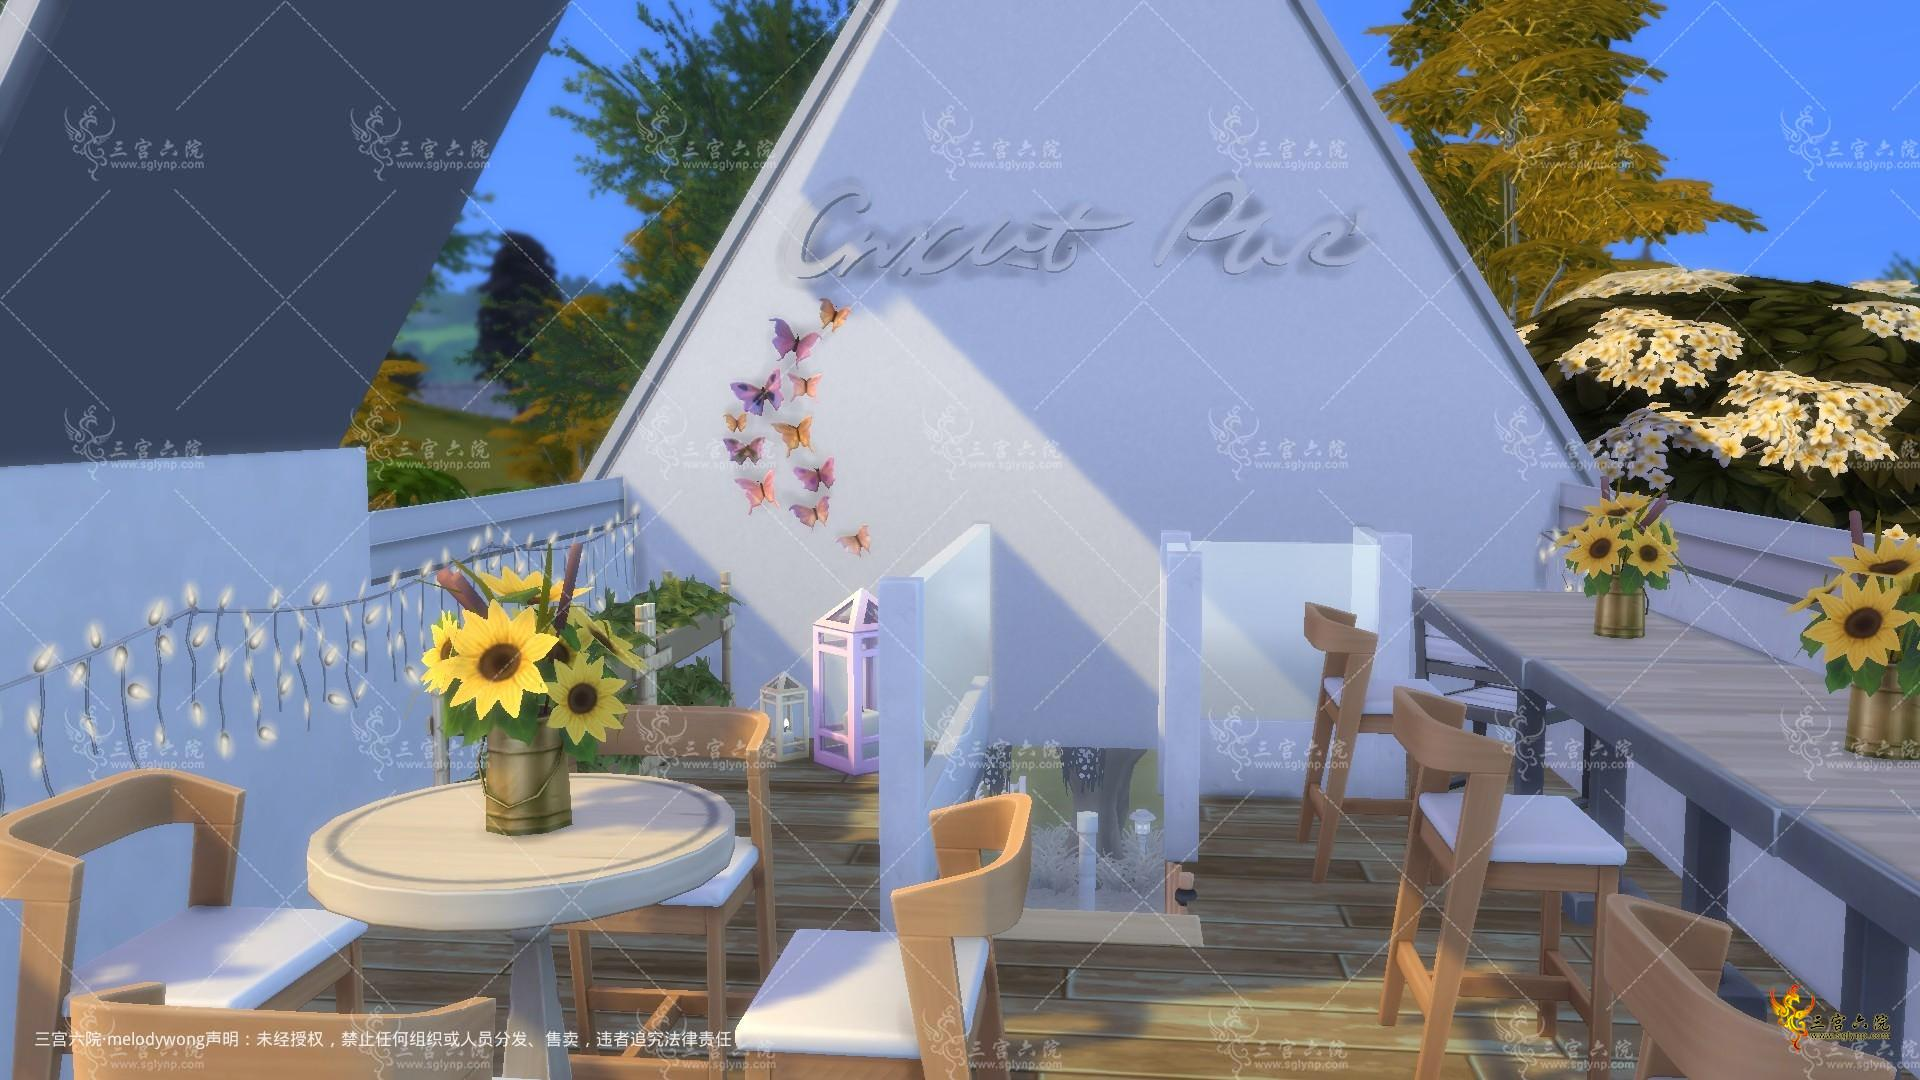 The Sims 4 2021_8_26 下午 03_13_24.png